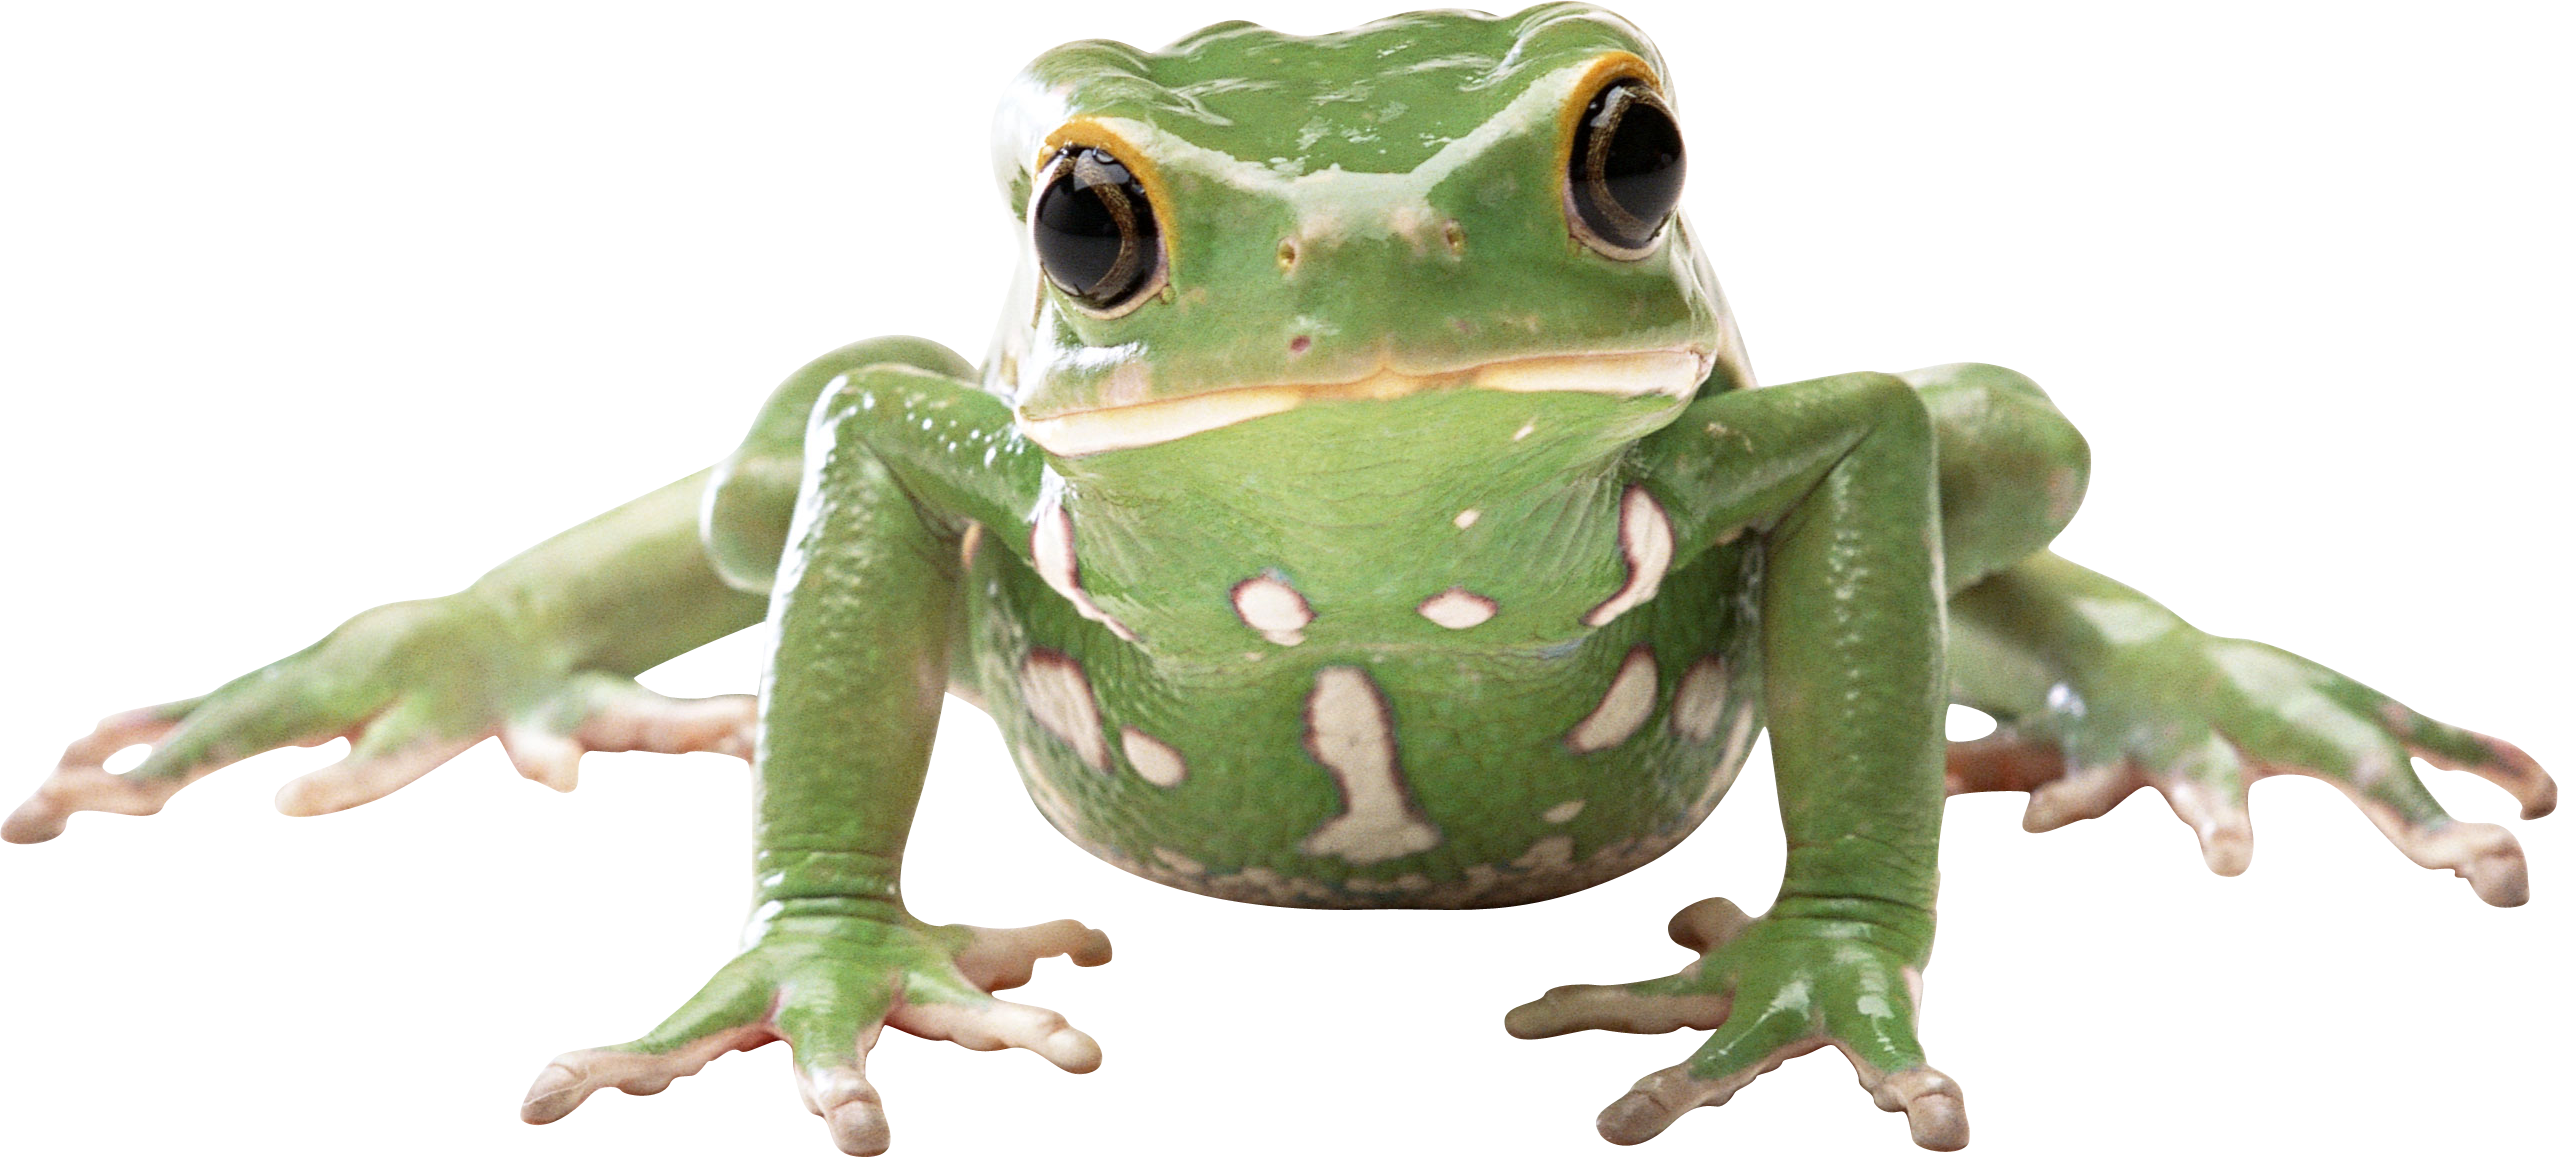 Frog PNG image free download image, frogs - Frog PNG HD